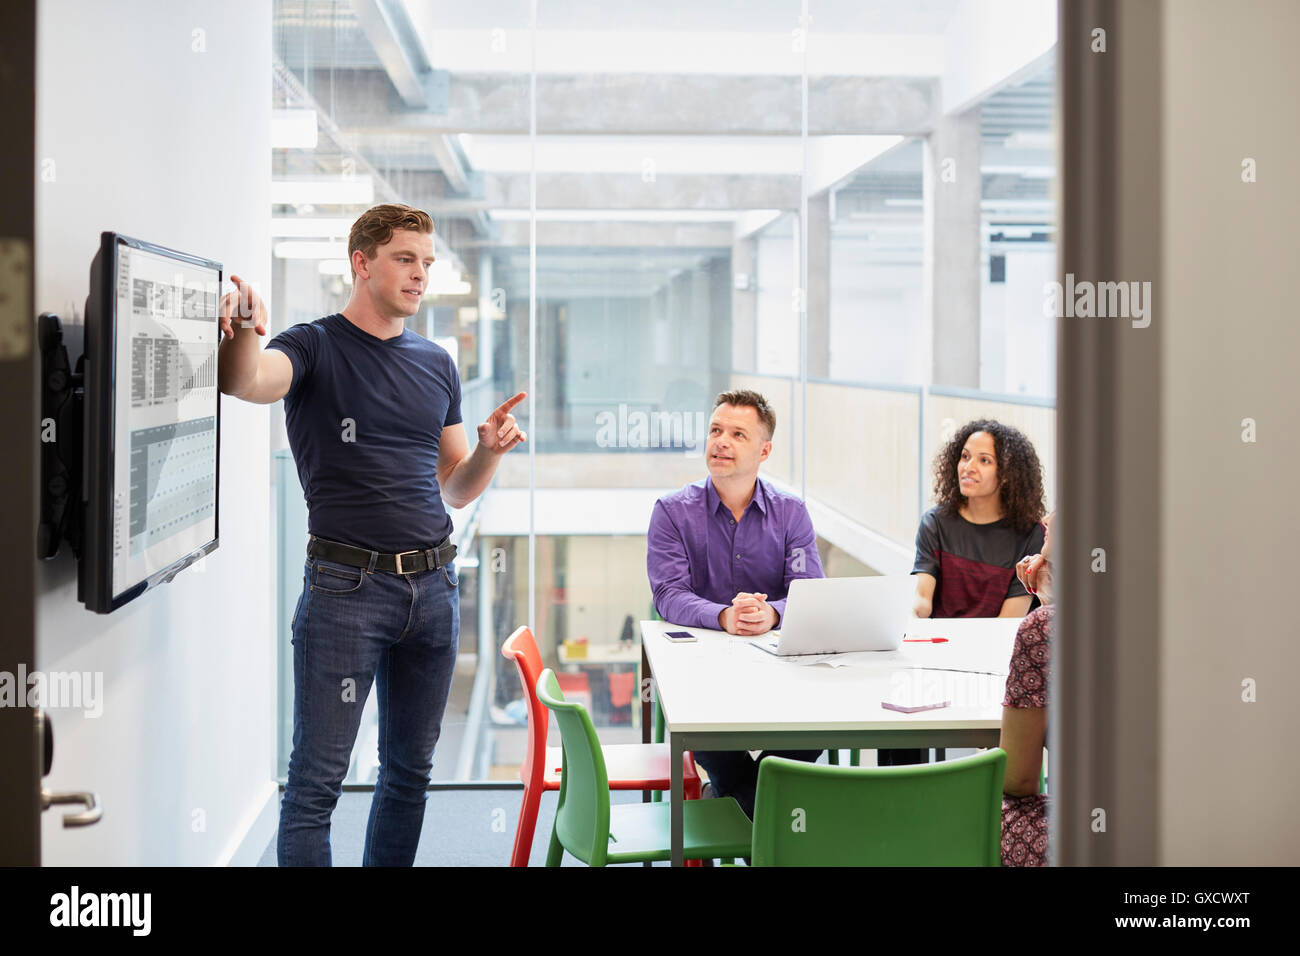 Young male designer making presentation in design studio - Stock Image